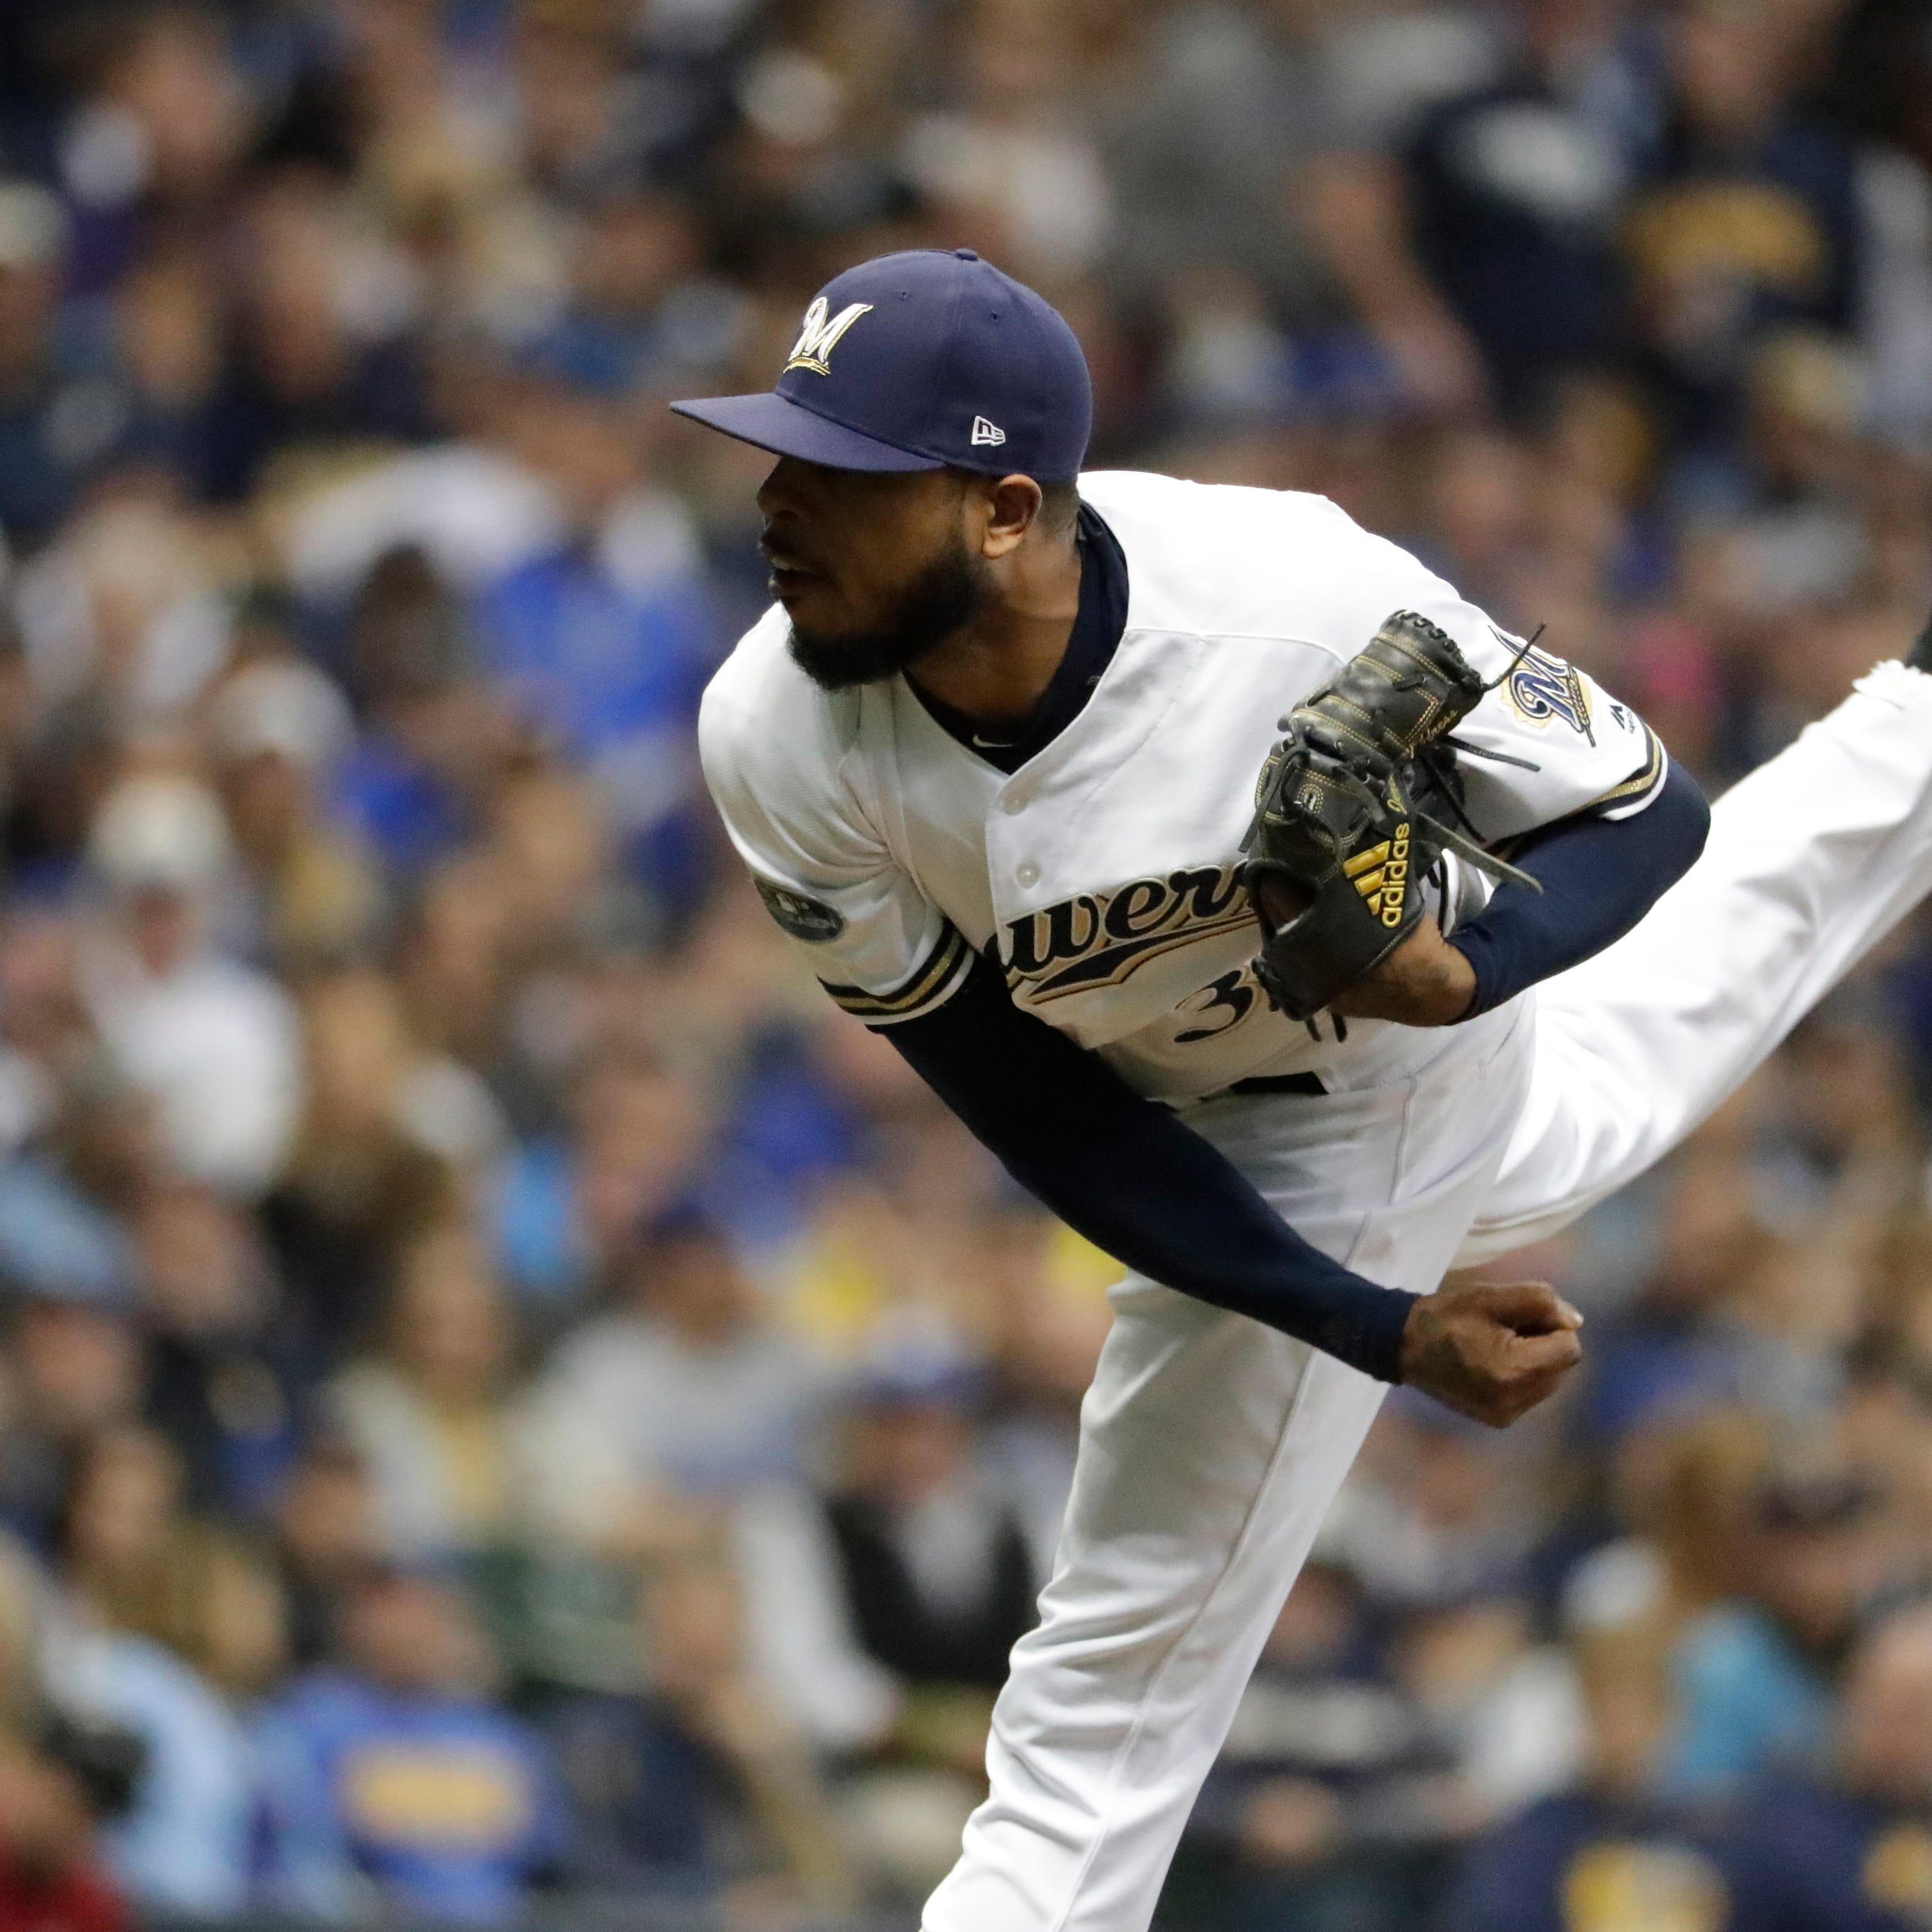 Jeremy Jeffress bought a food truck, and he's bringing his favorite fish fry to Milwaukee